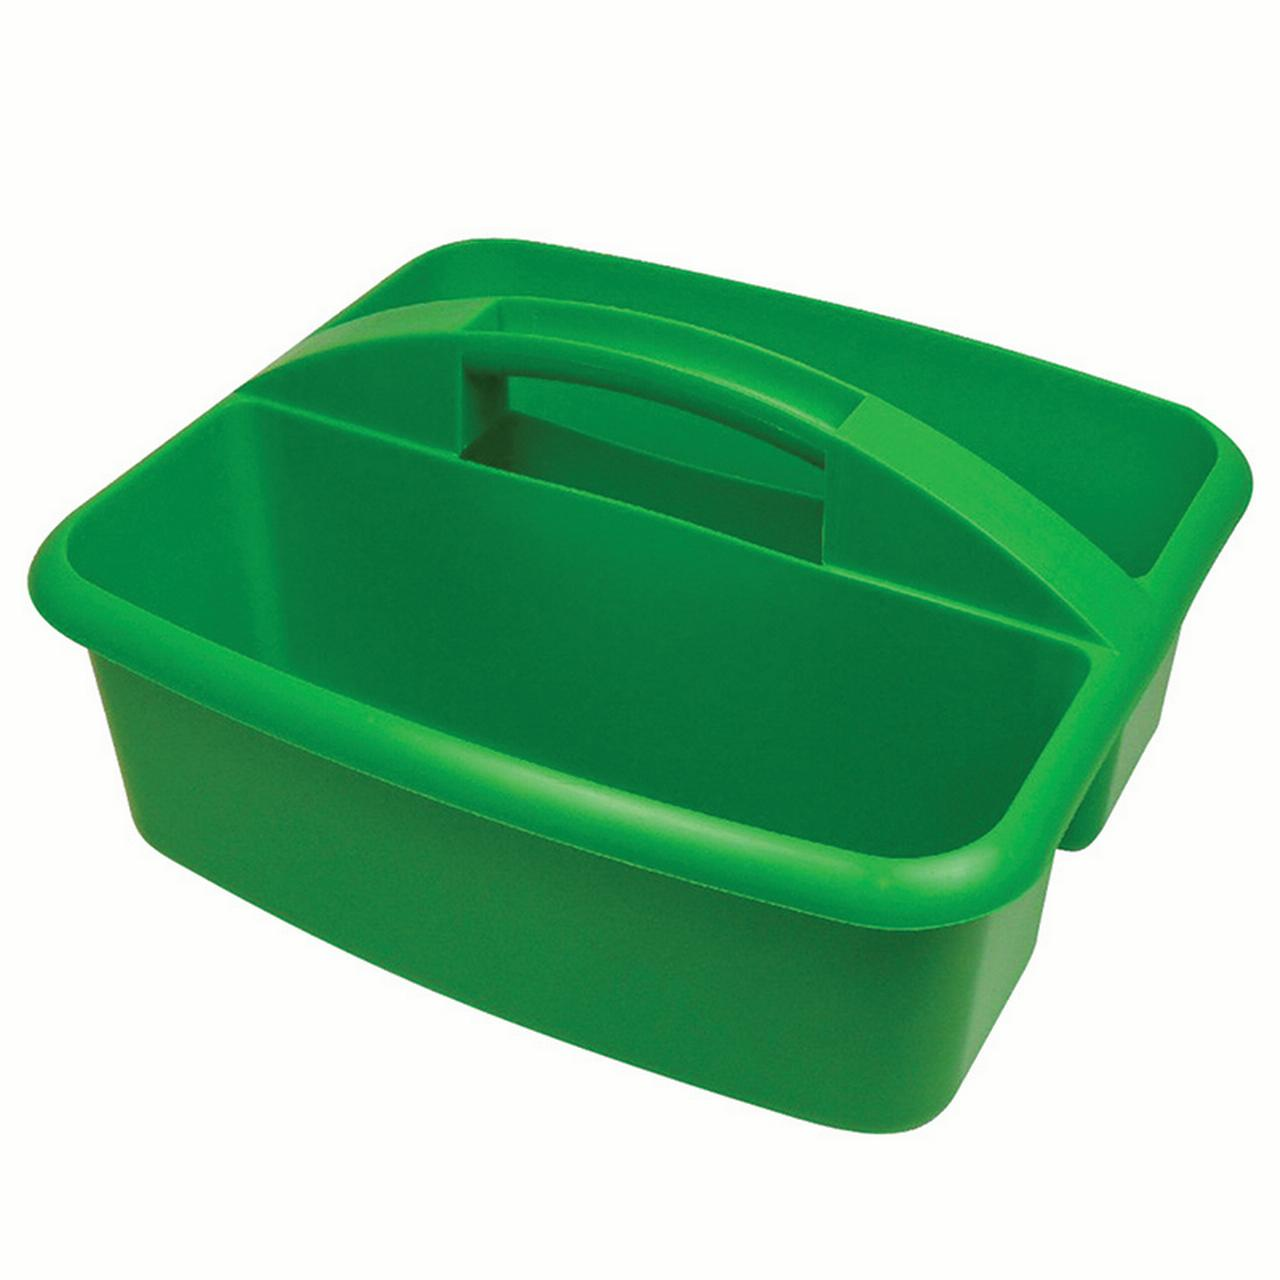 LARGE UTILITY CADDY GREEN